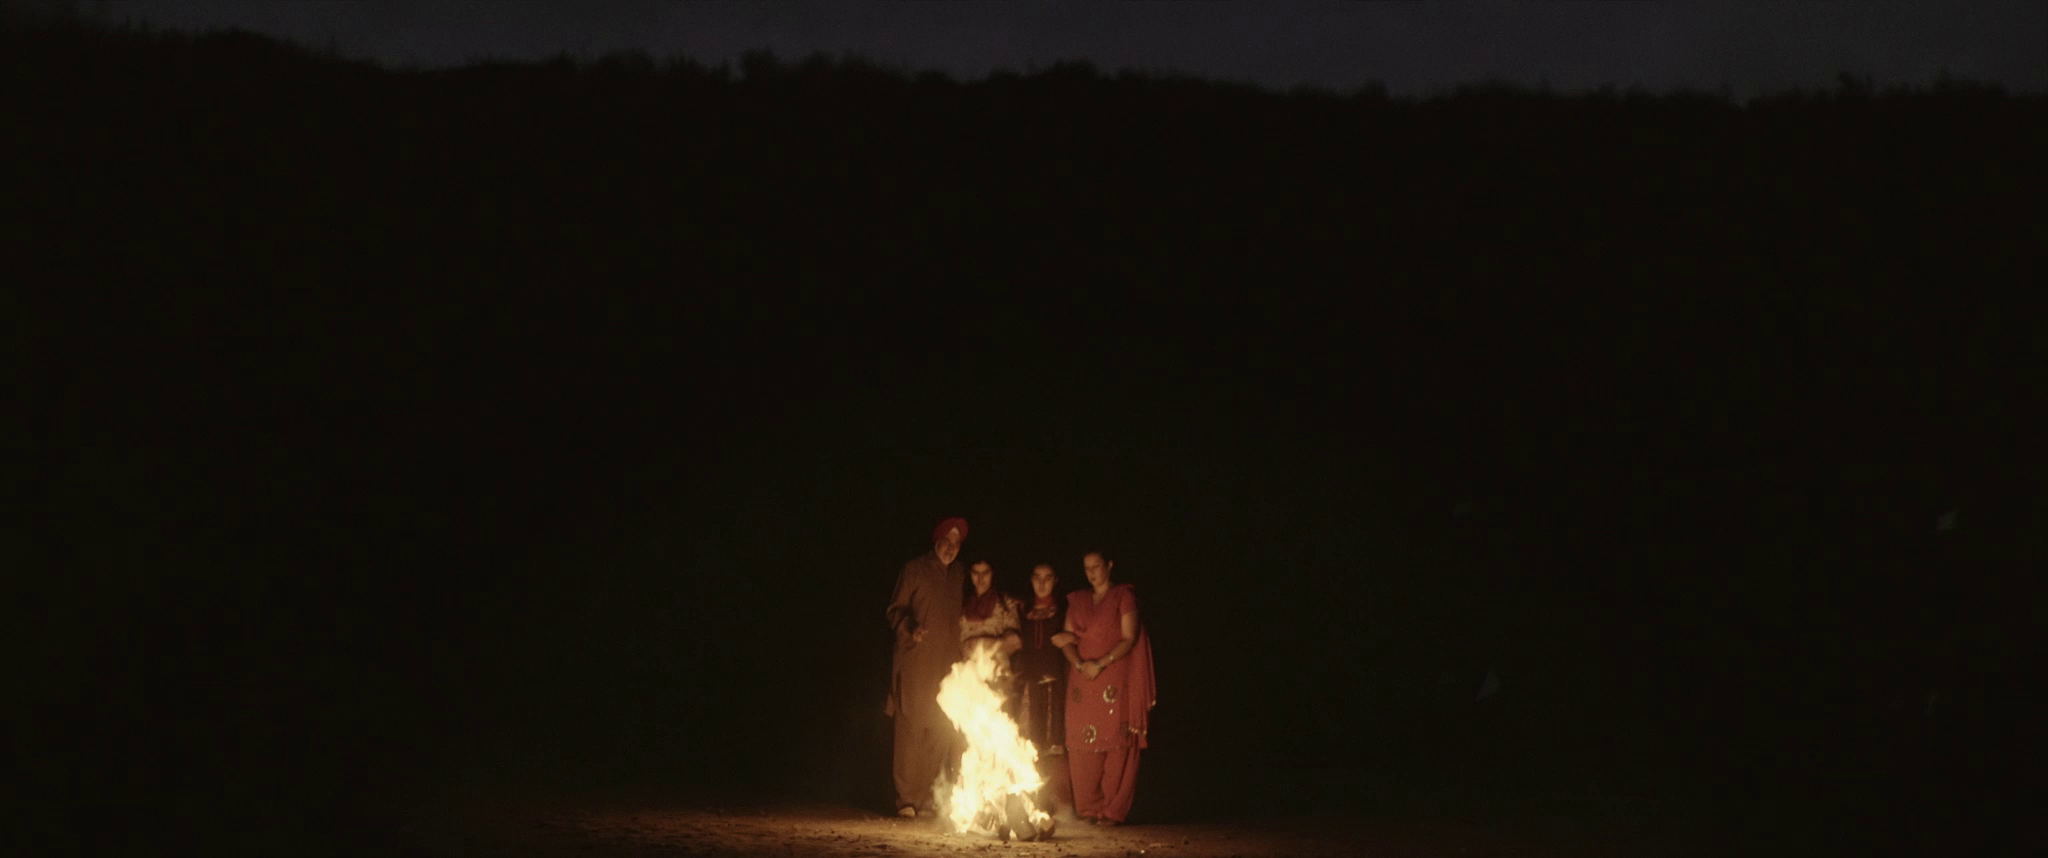 three personne around a fire in the desert